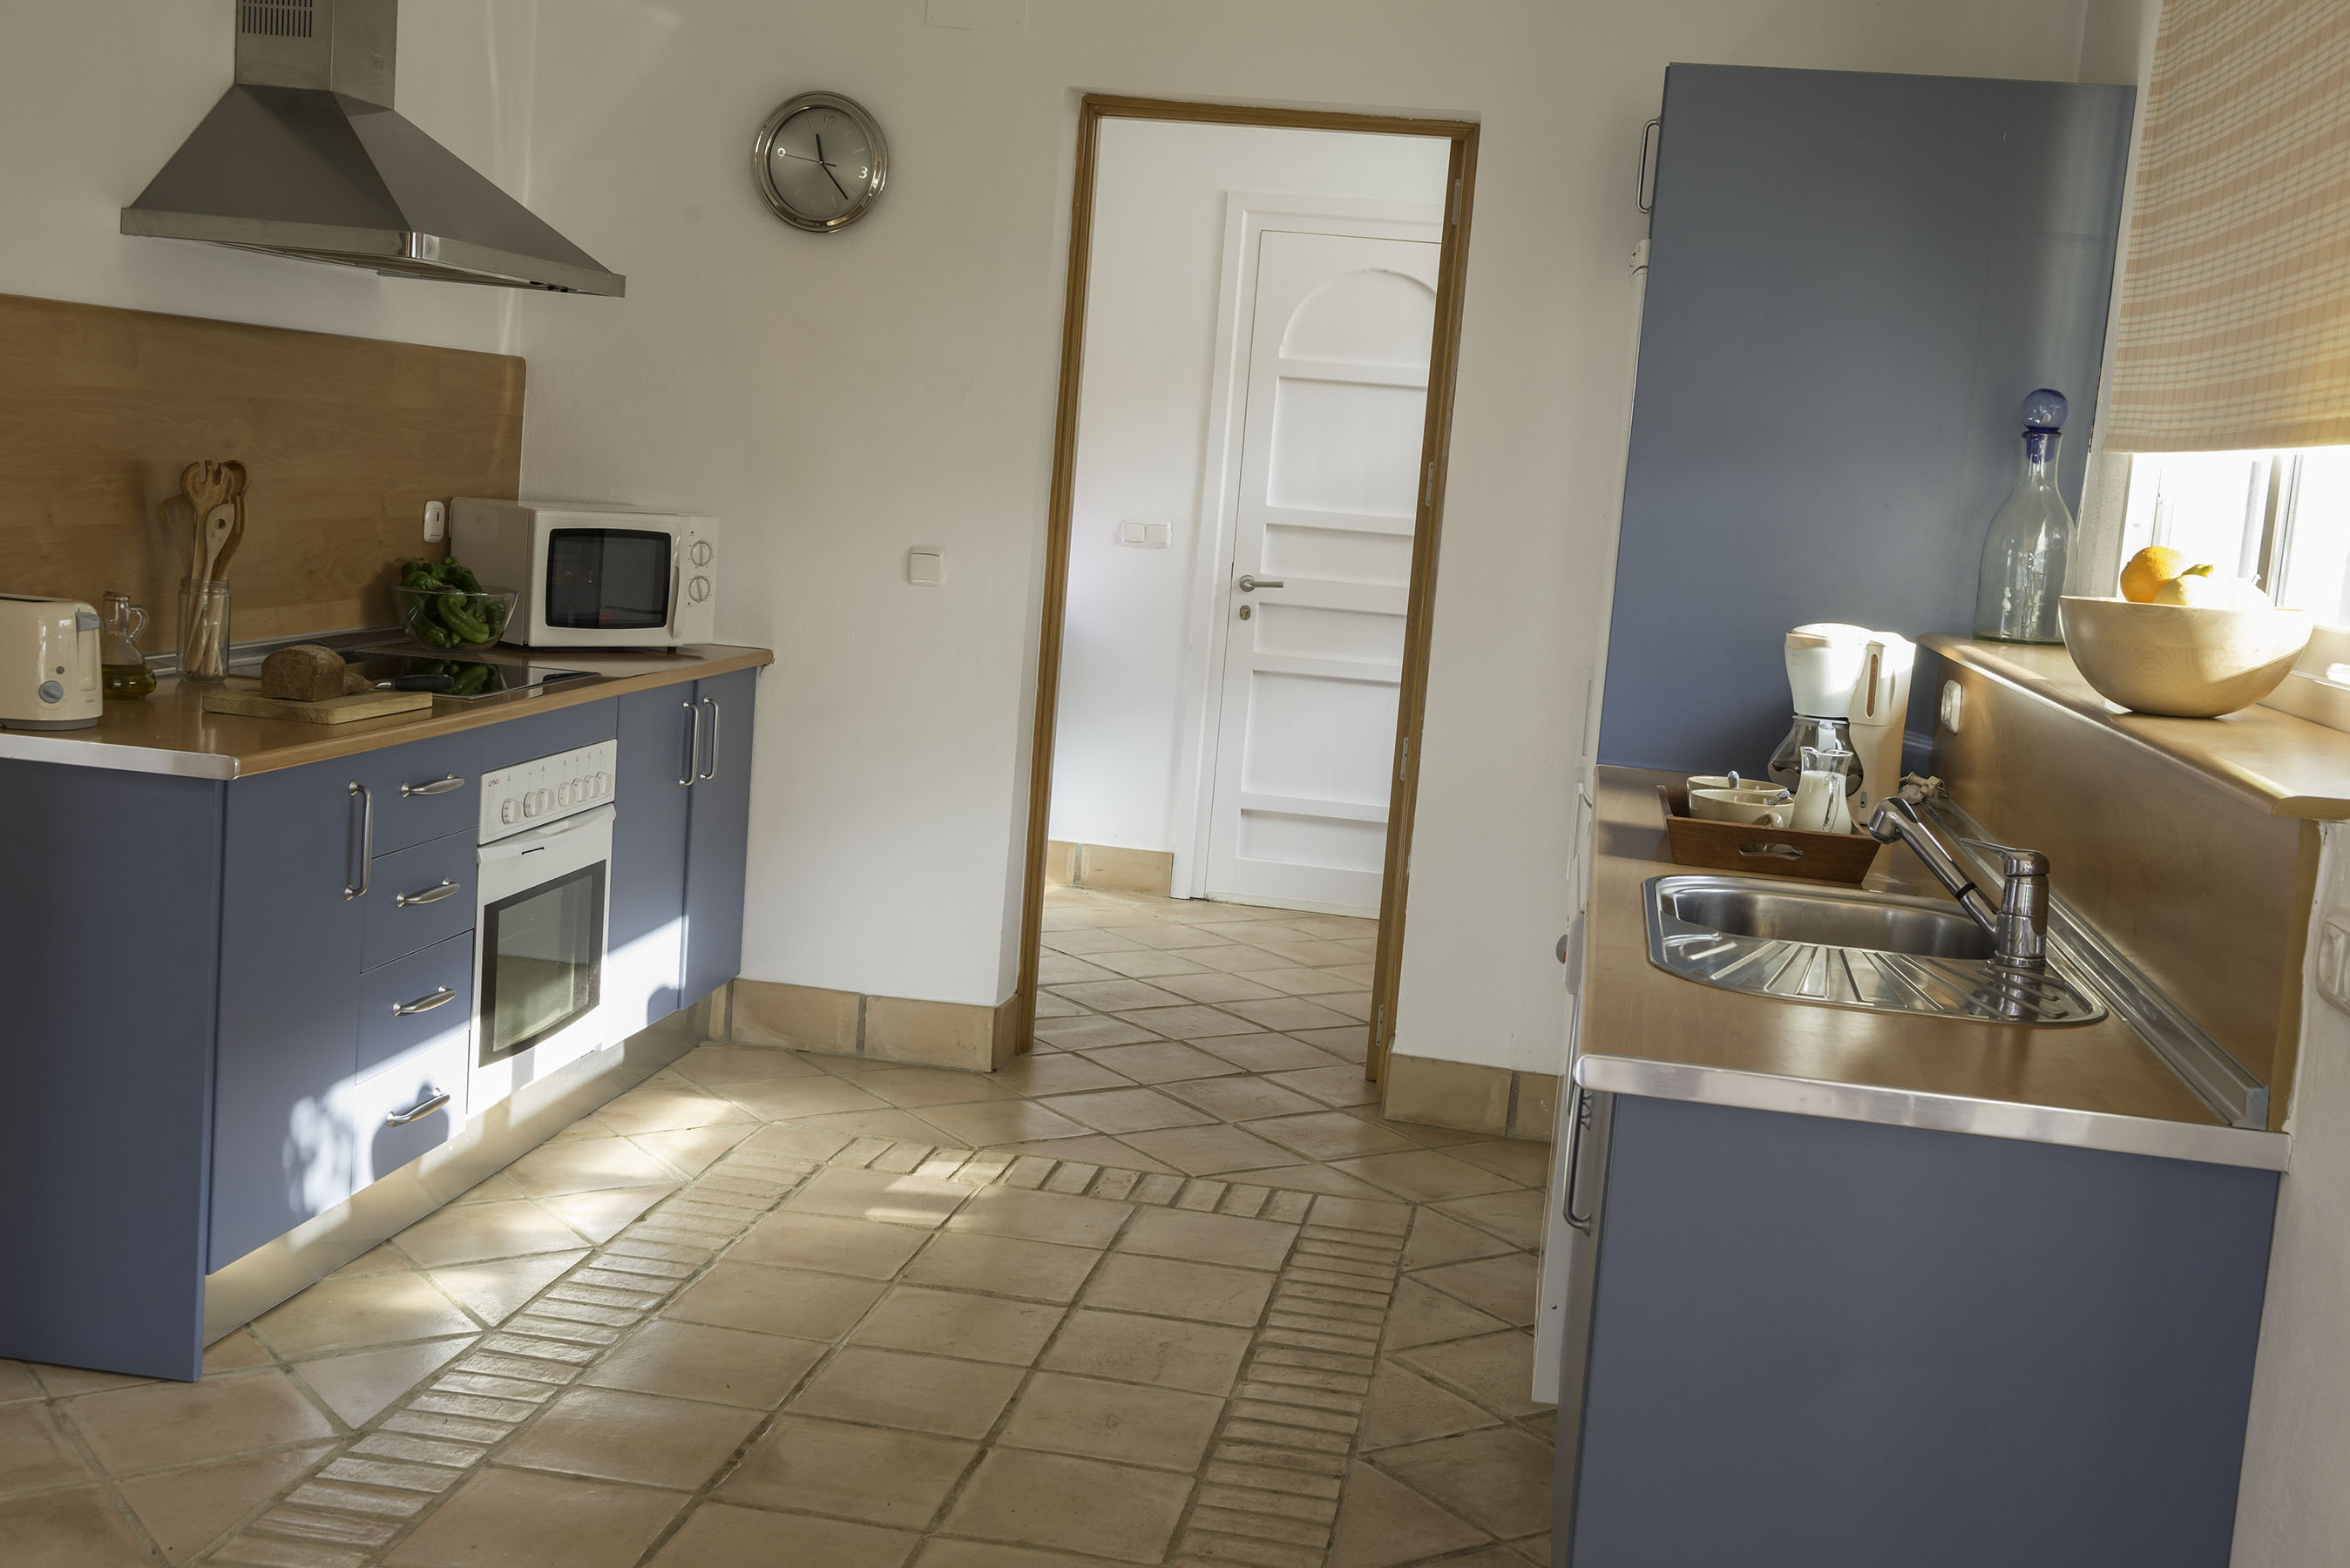 Villa Amapola kitchen picture 2